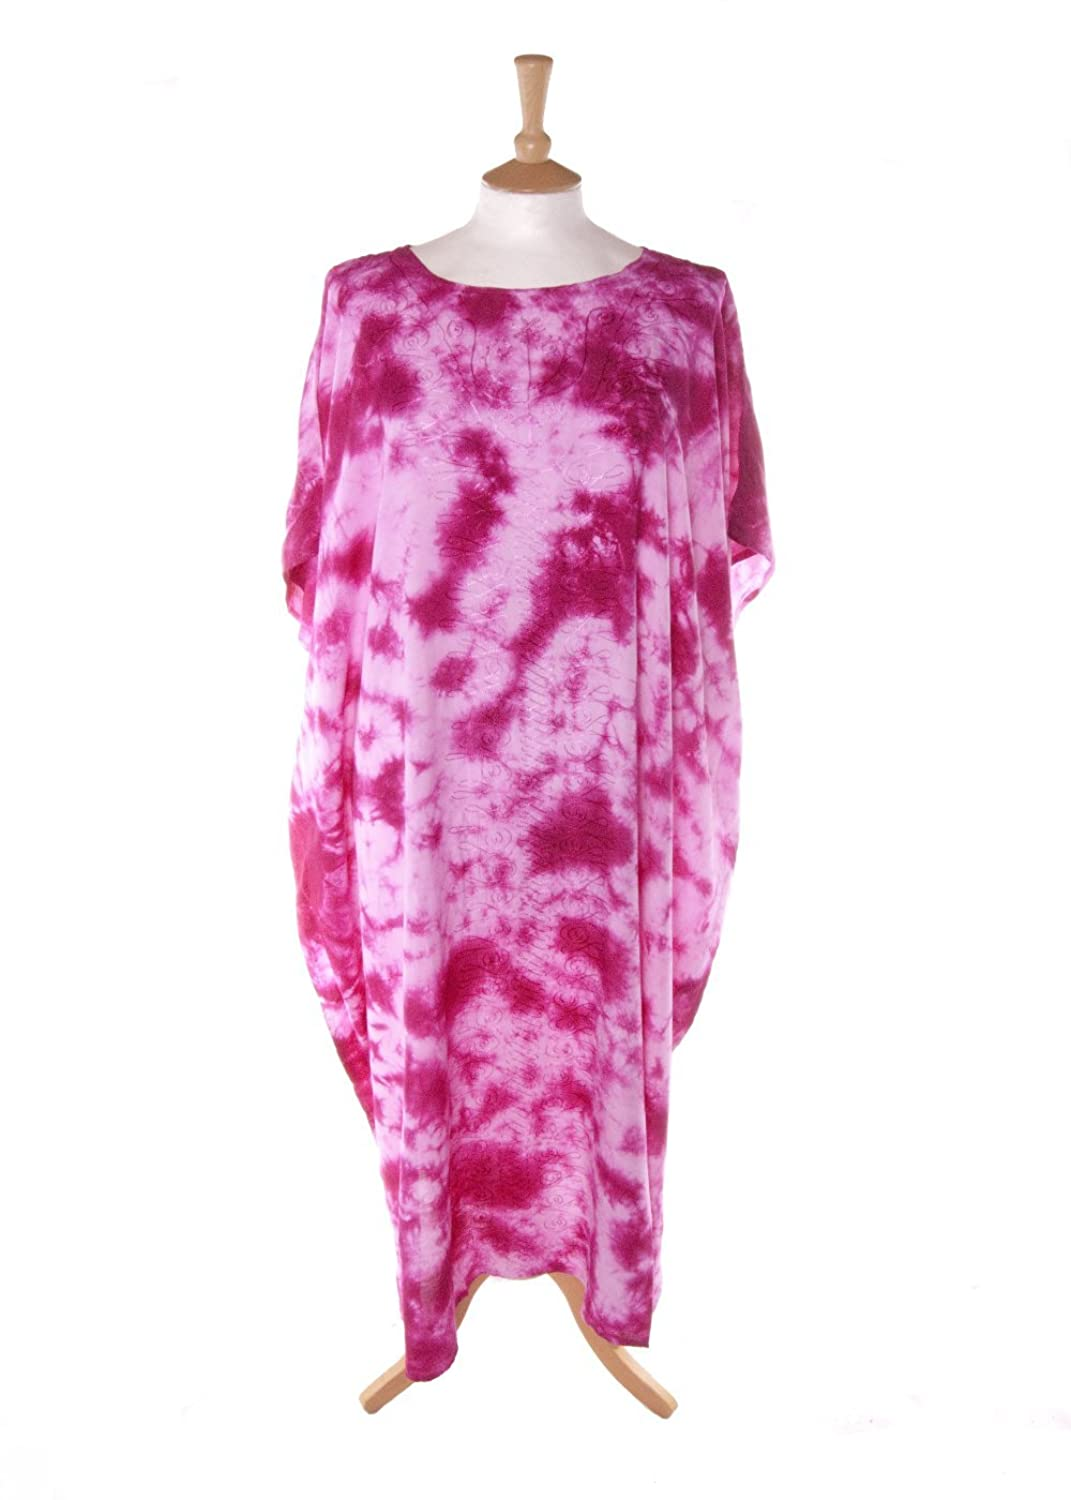 Didi 6064 Tie Dye Beaded Kaftan in Pink Sizes 14-34